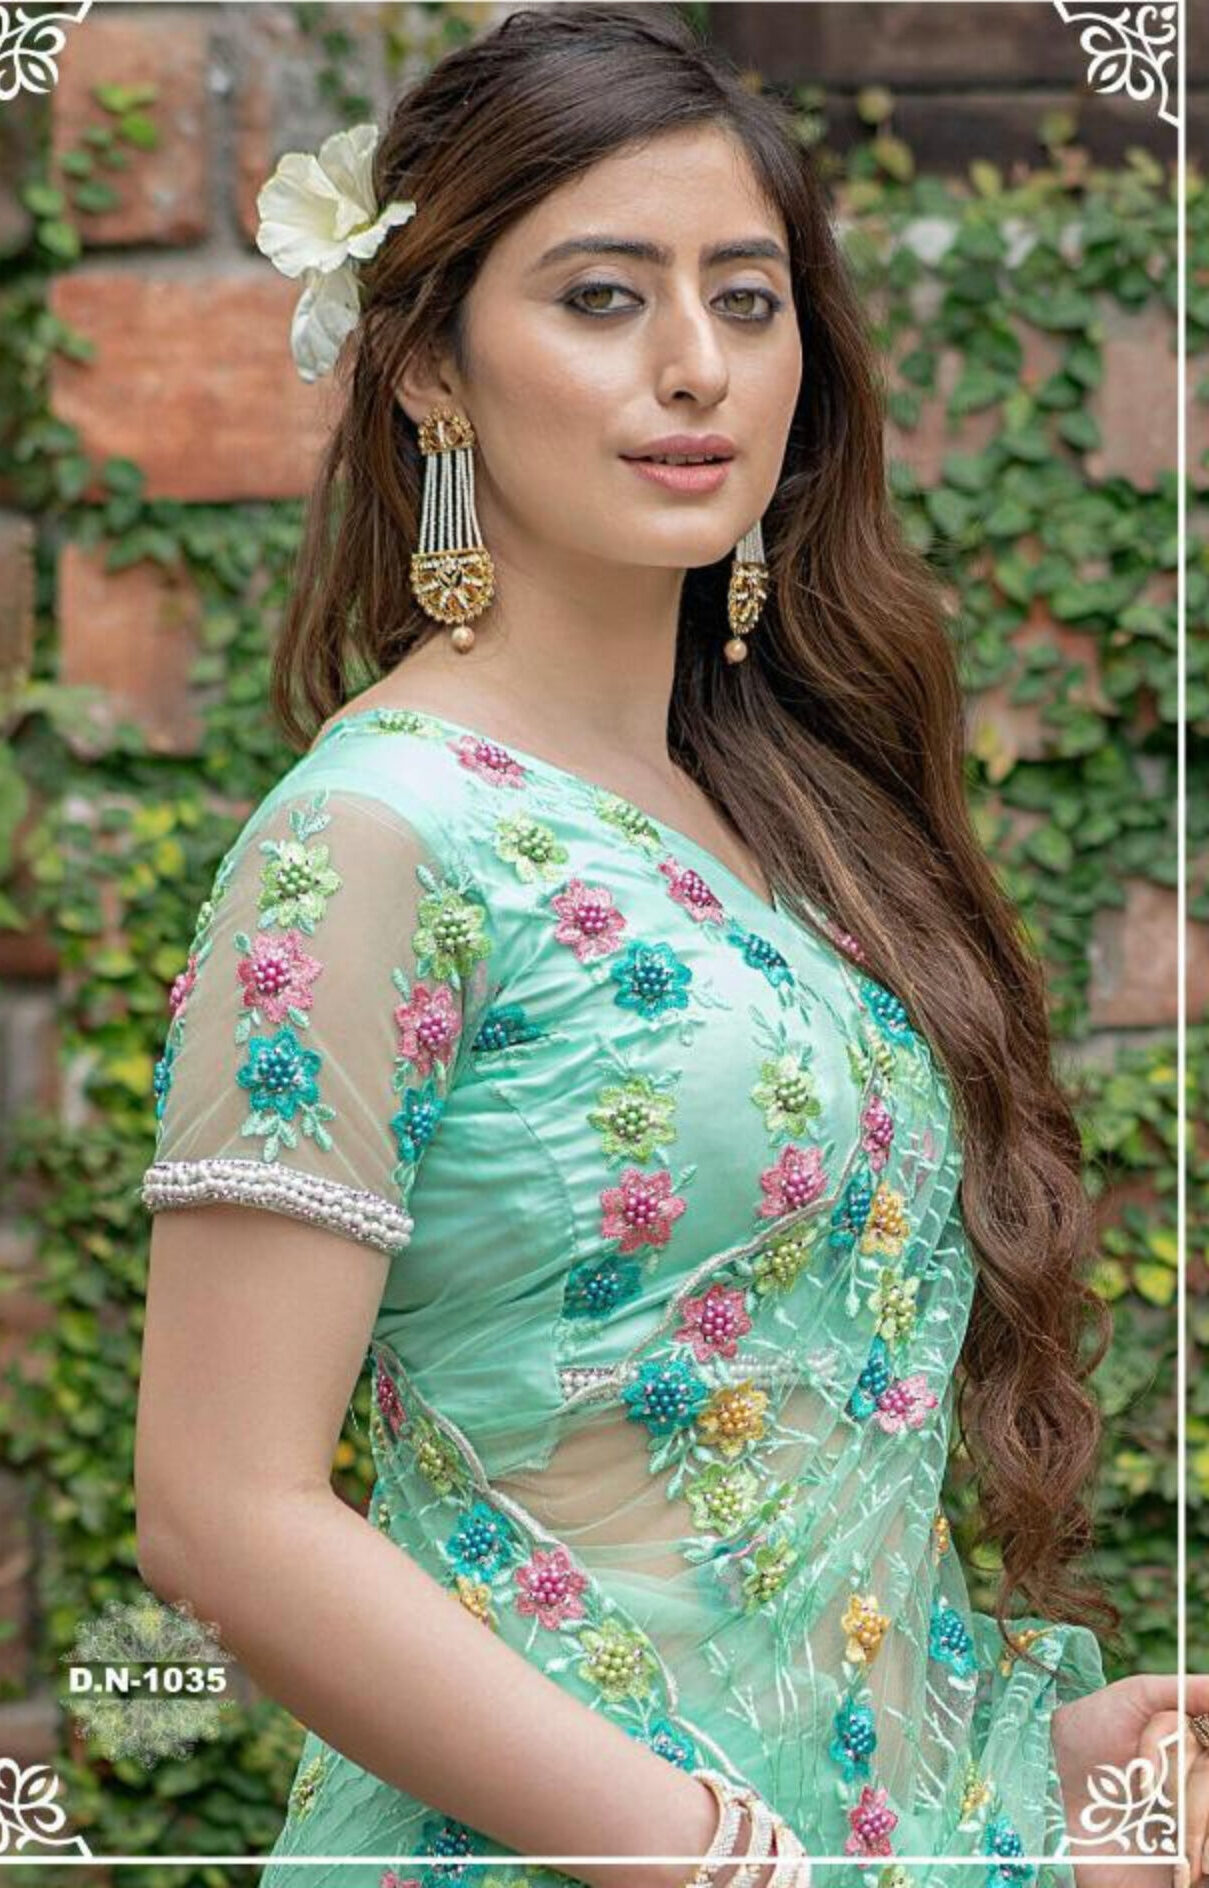 Sky Blue Colour Heavy Embroidered Net Saree for Wedding Party